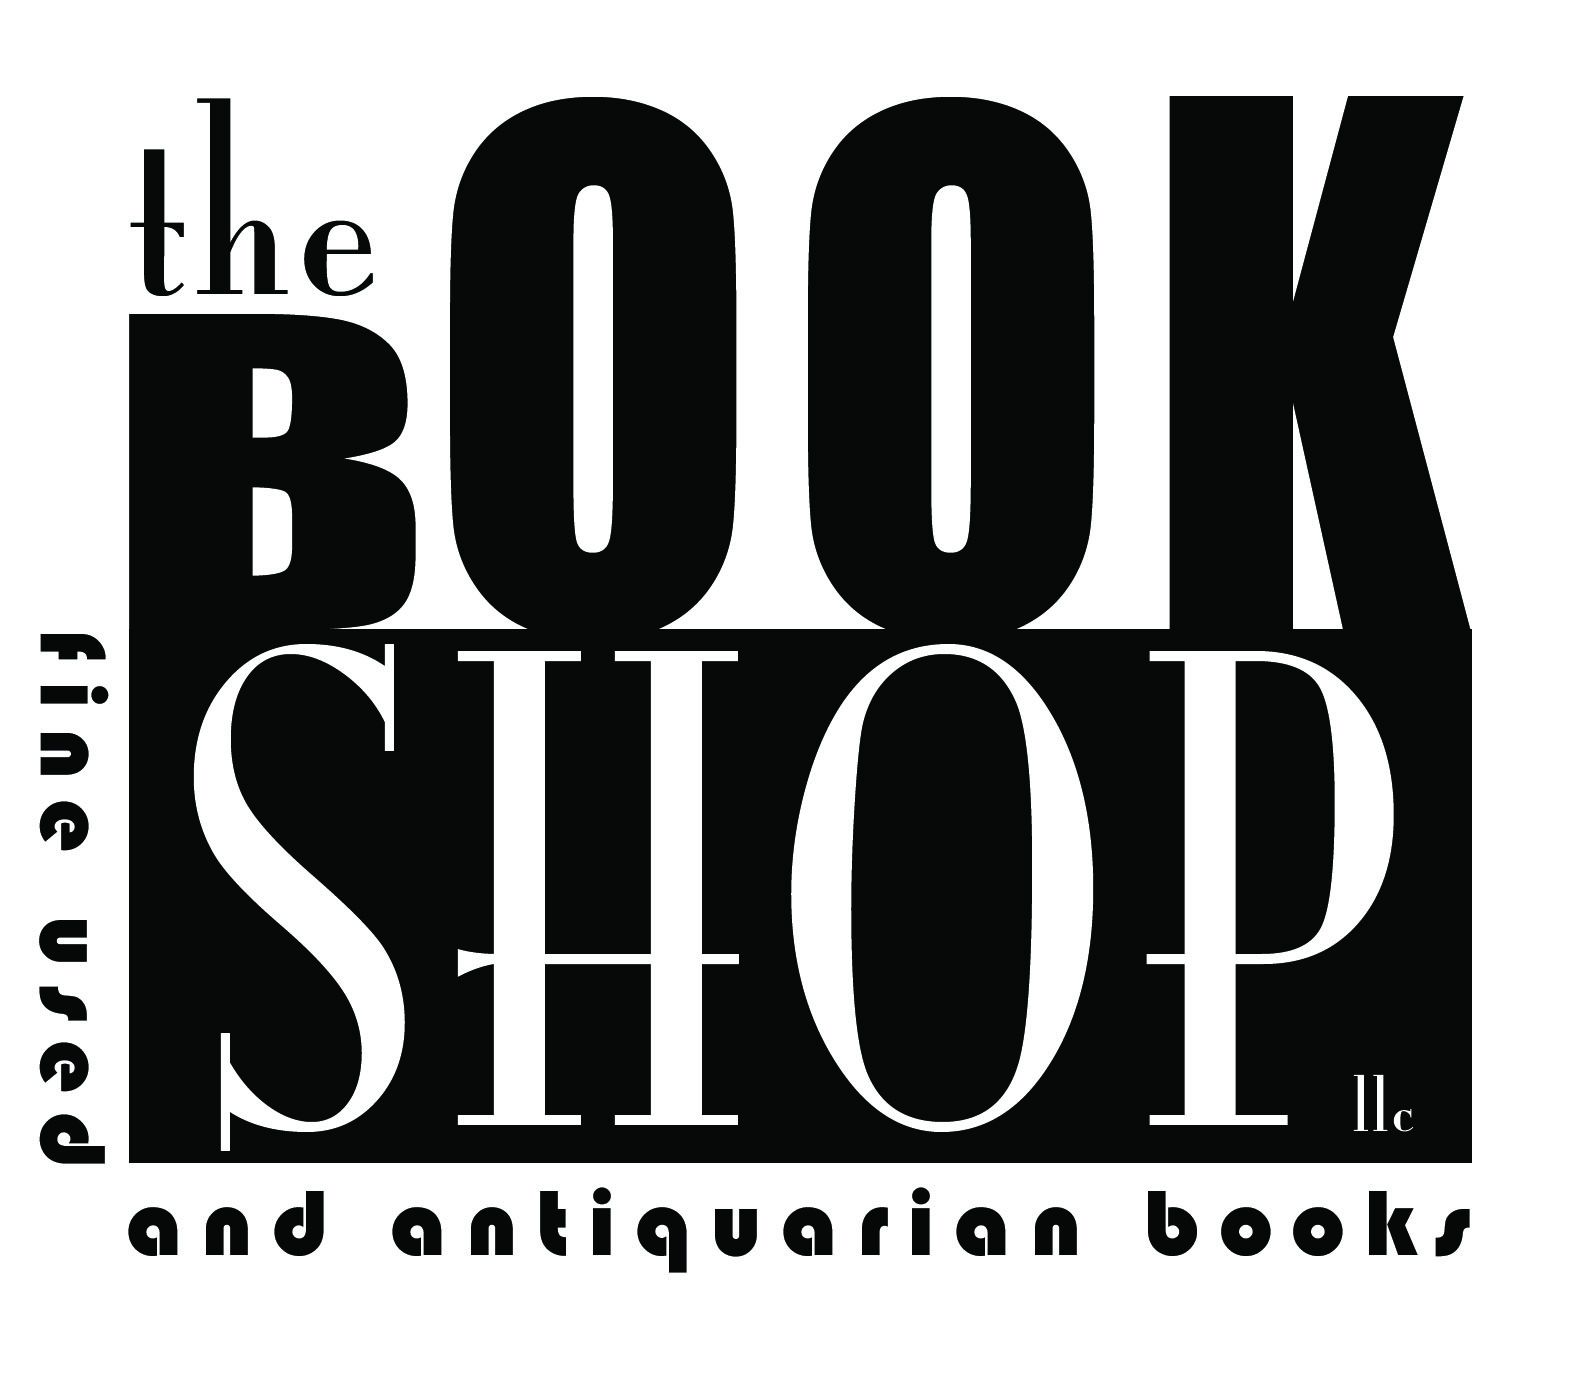 The Book Shop, LLC